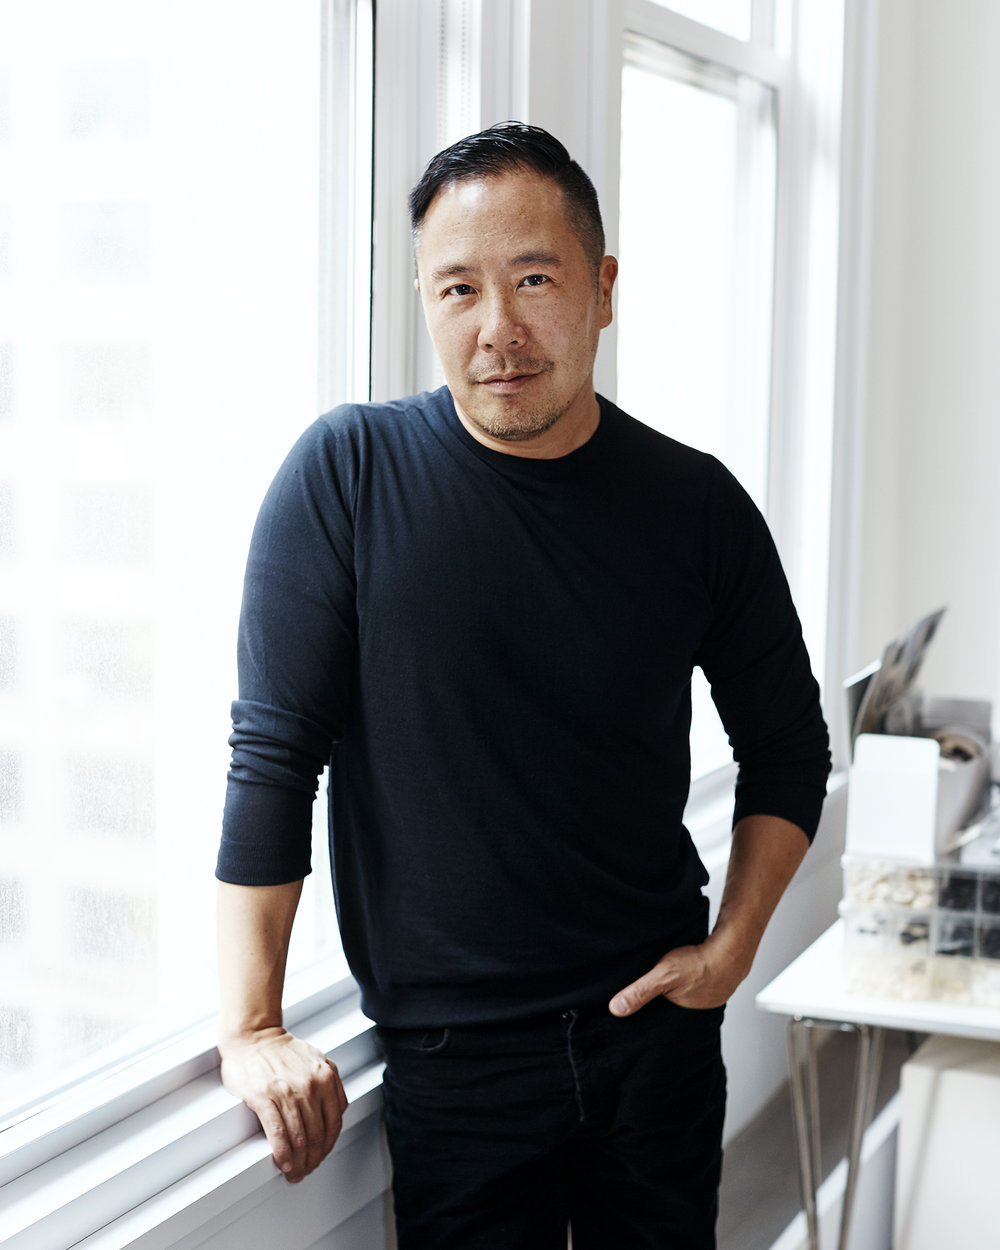 Derek-Lam_by-Weston-Wells.jpg